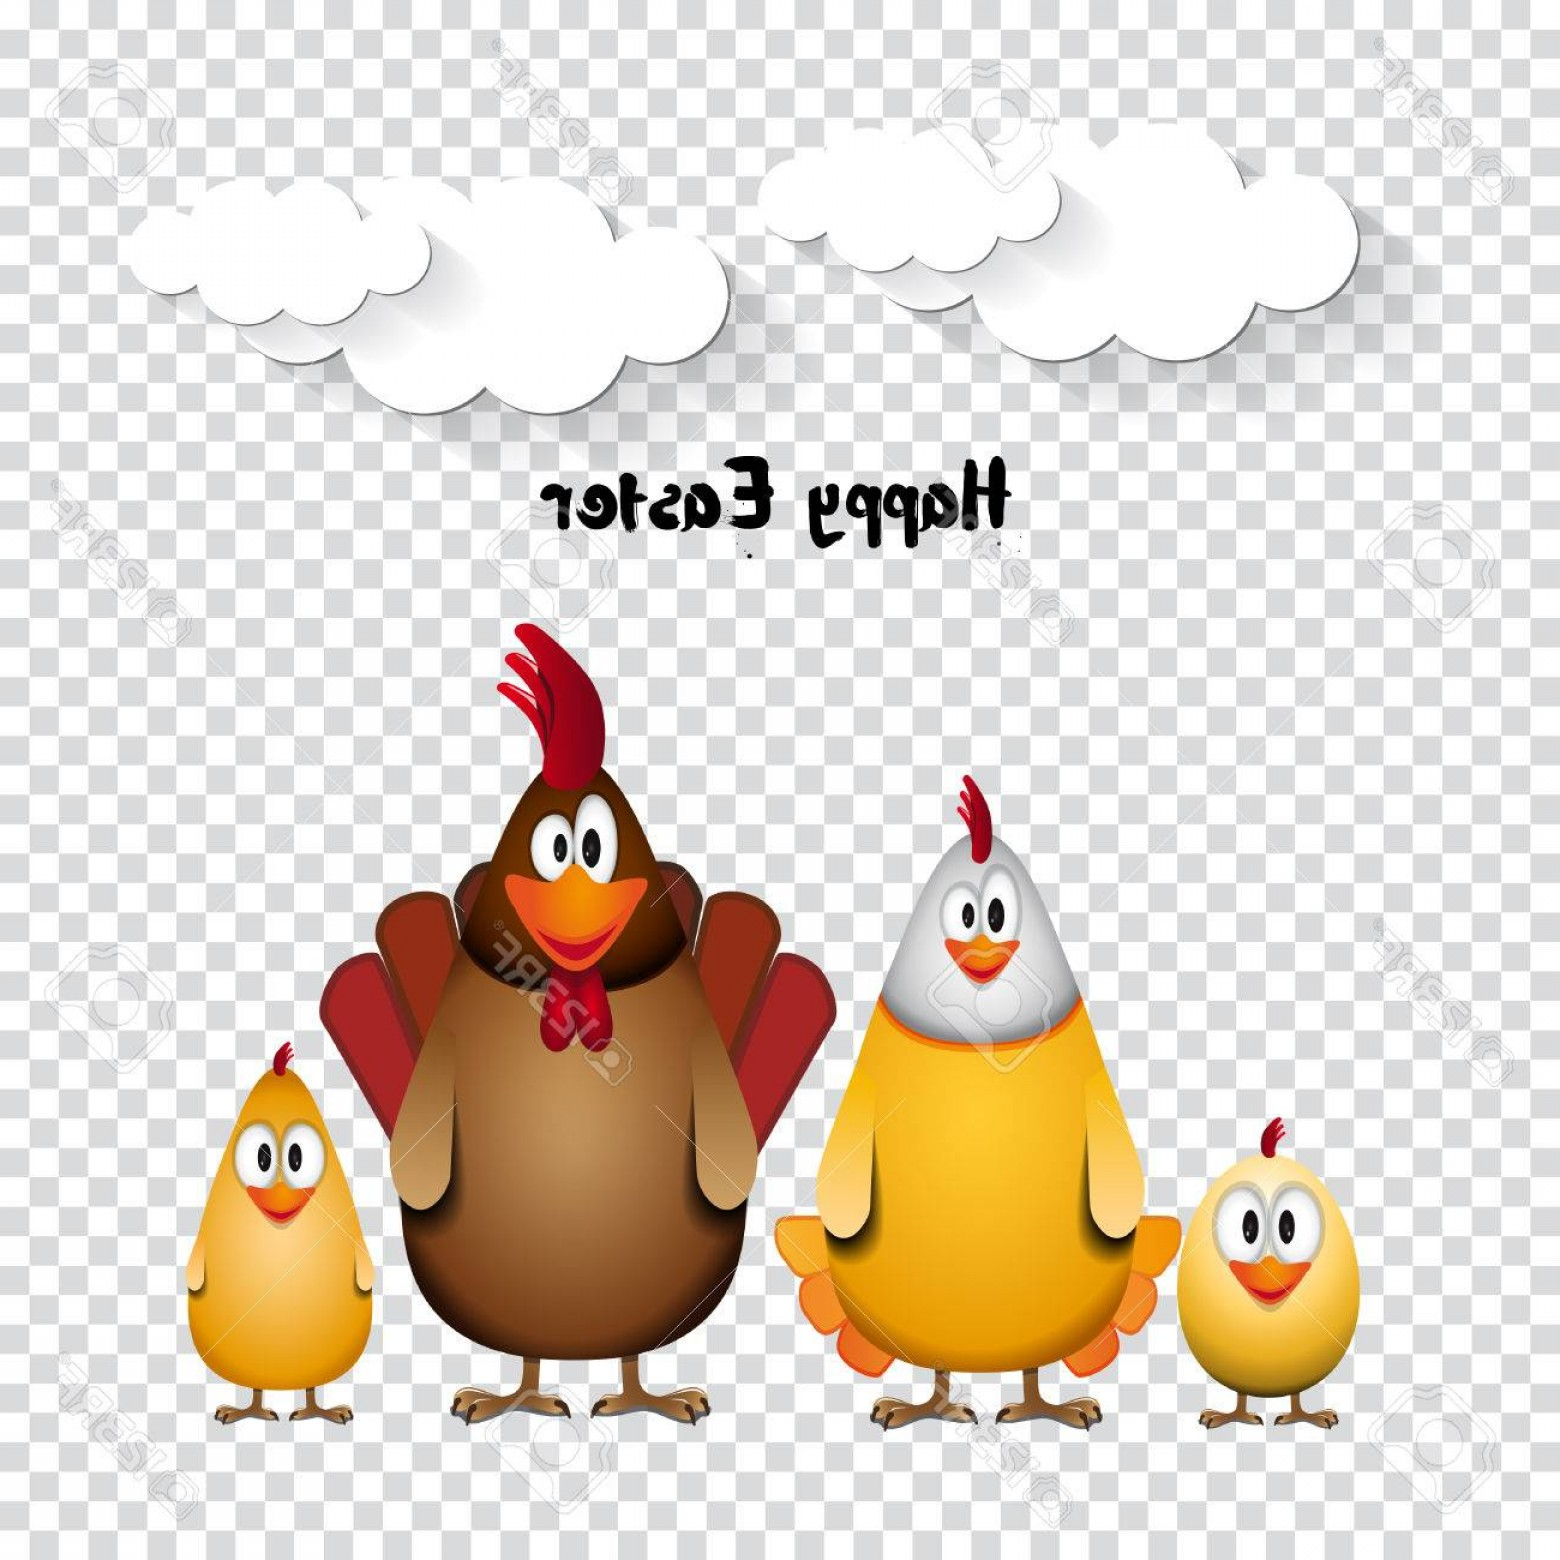 Easter Vector Art No Background: Photostock Vector Happy Easter Funny Chicken Family Vector Illustration On Transparent Background